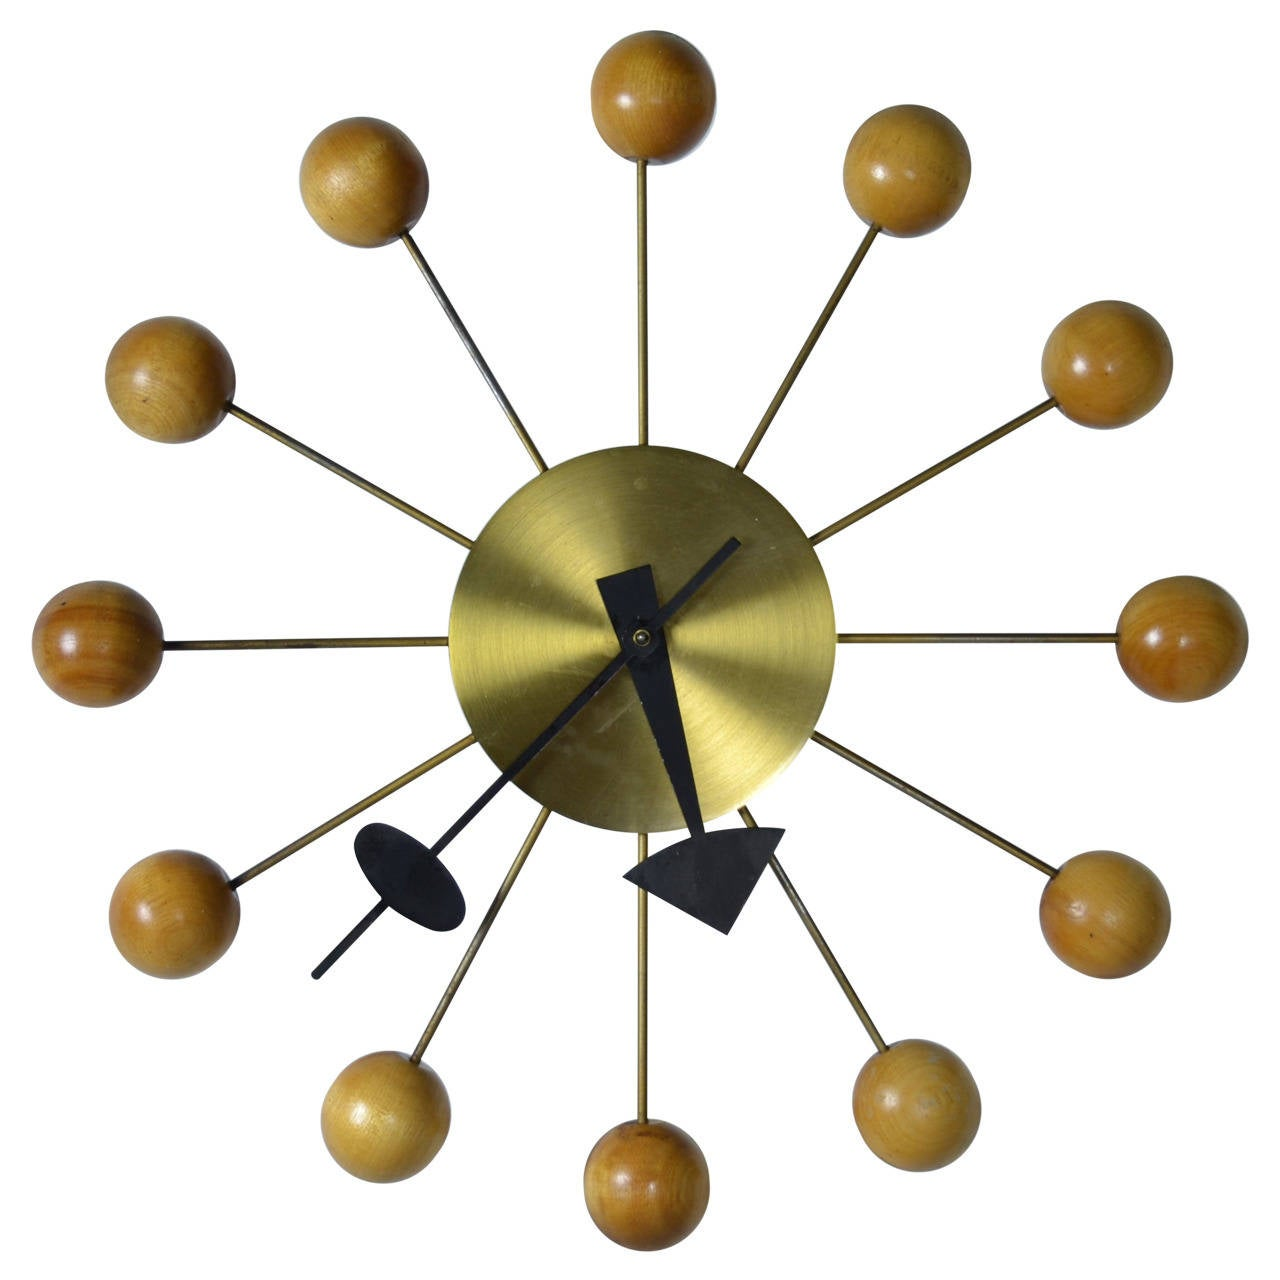 George nelson ball clock for howard miller at 1stdibs for Nelson wall clock